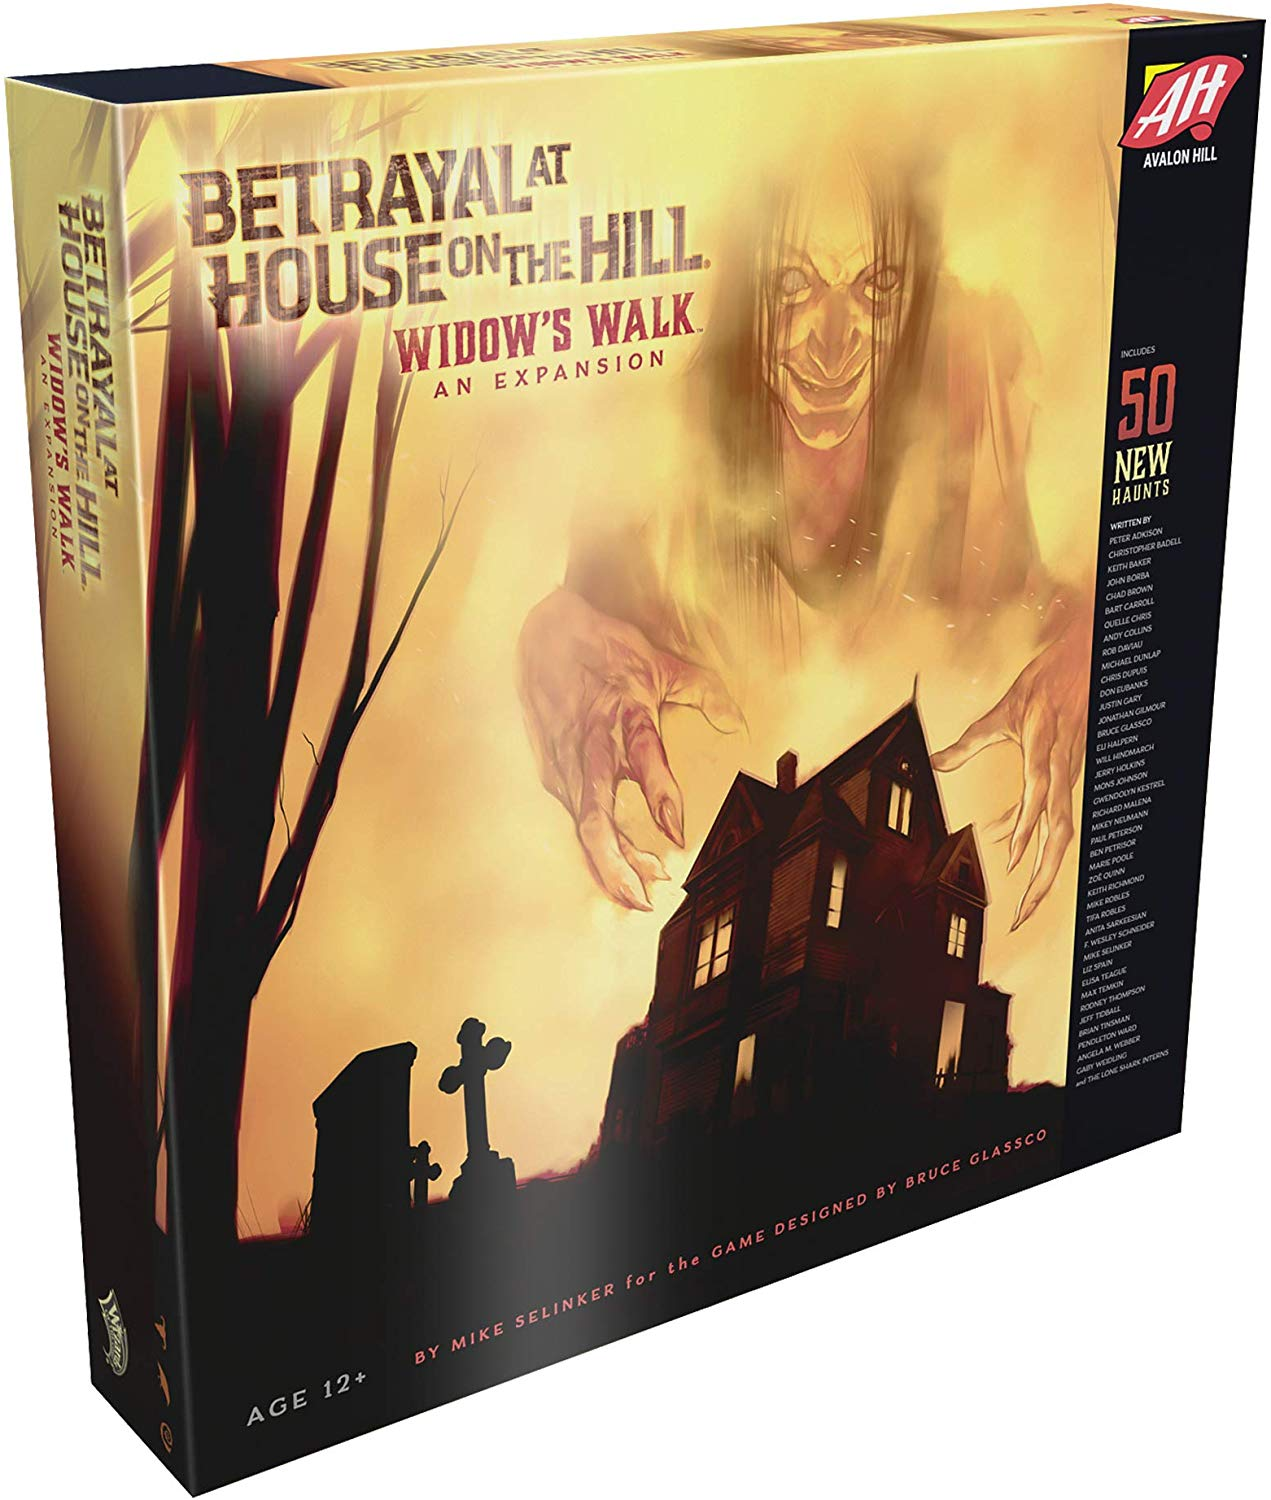 Betrayal Widows Walk | North Game Den